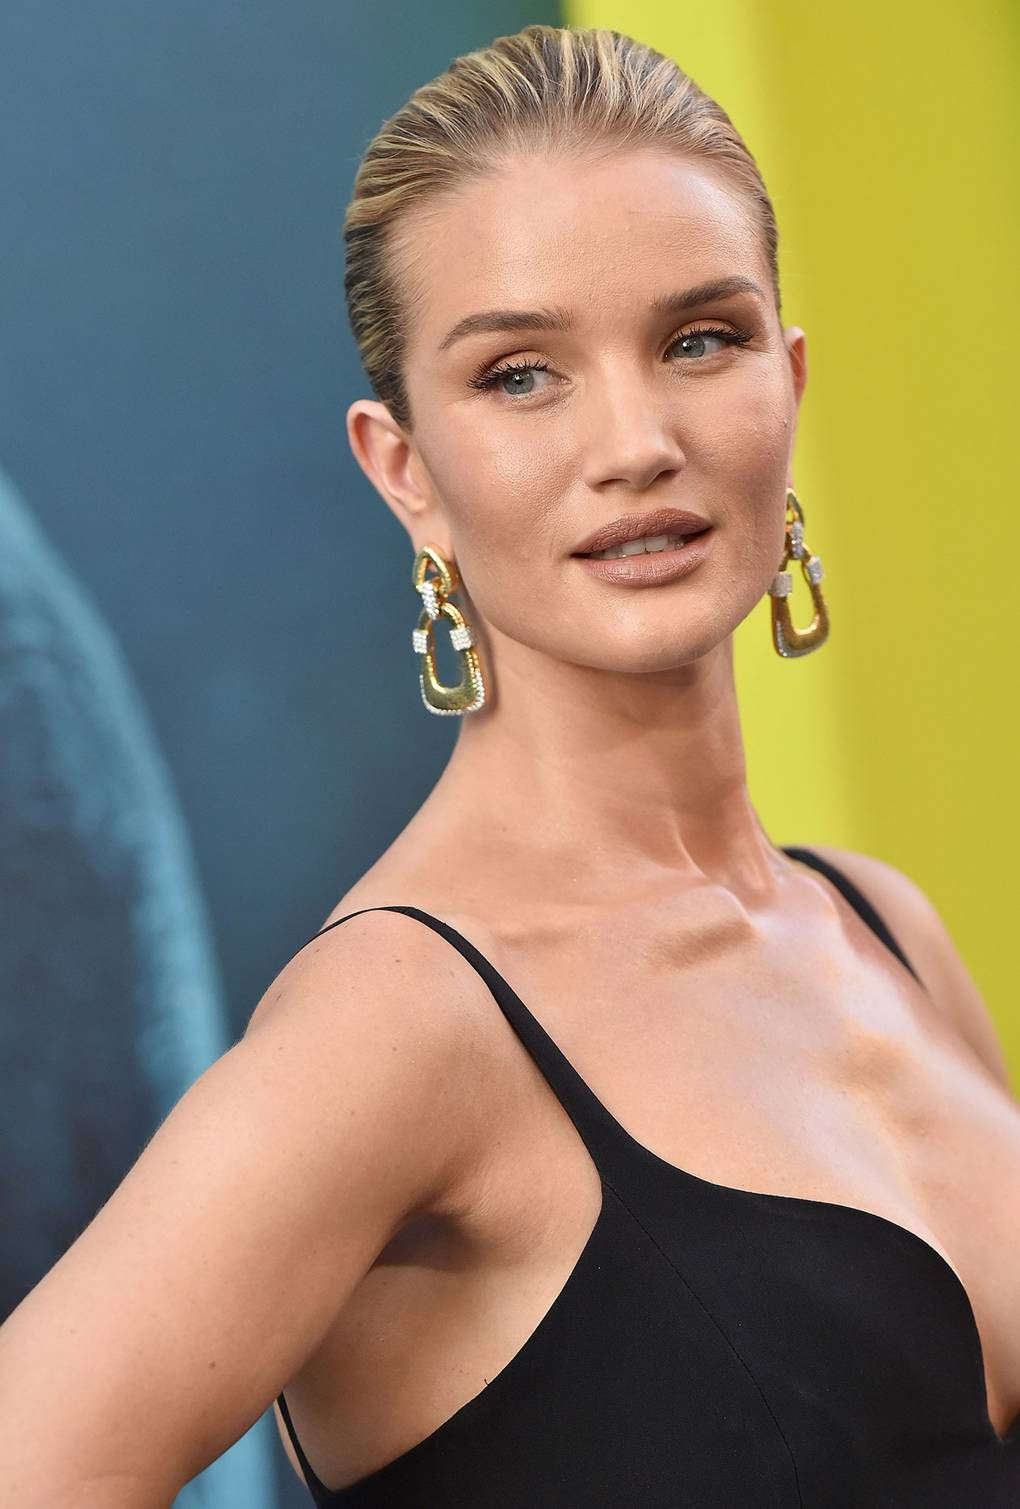 Celebs are going nude on their lips: Tips on how you